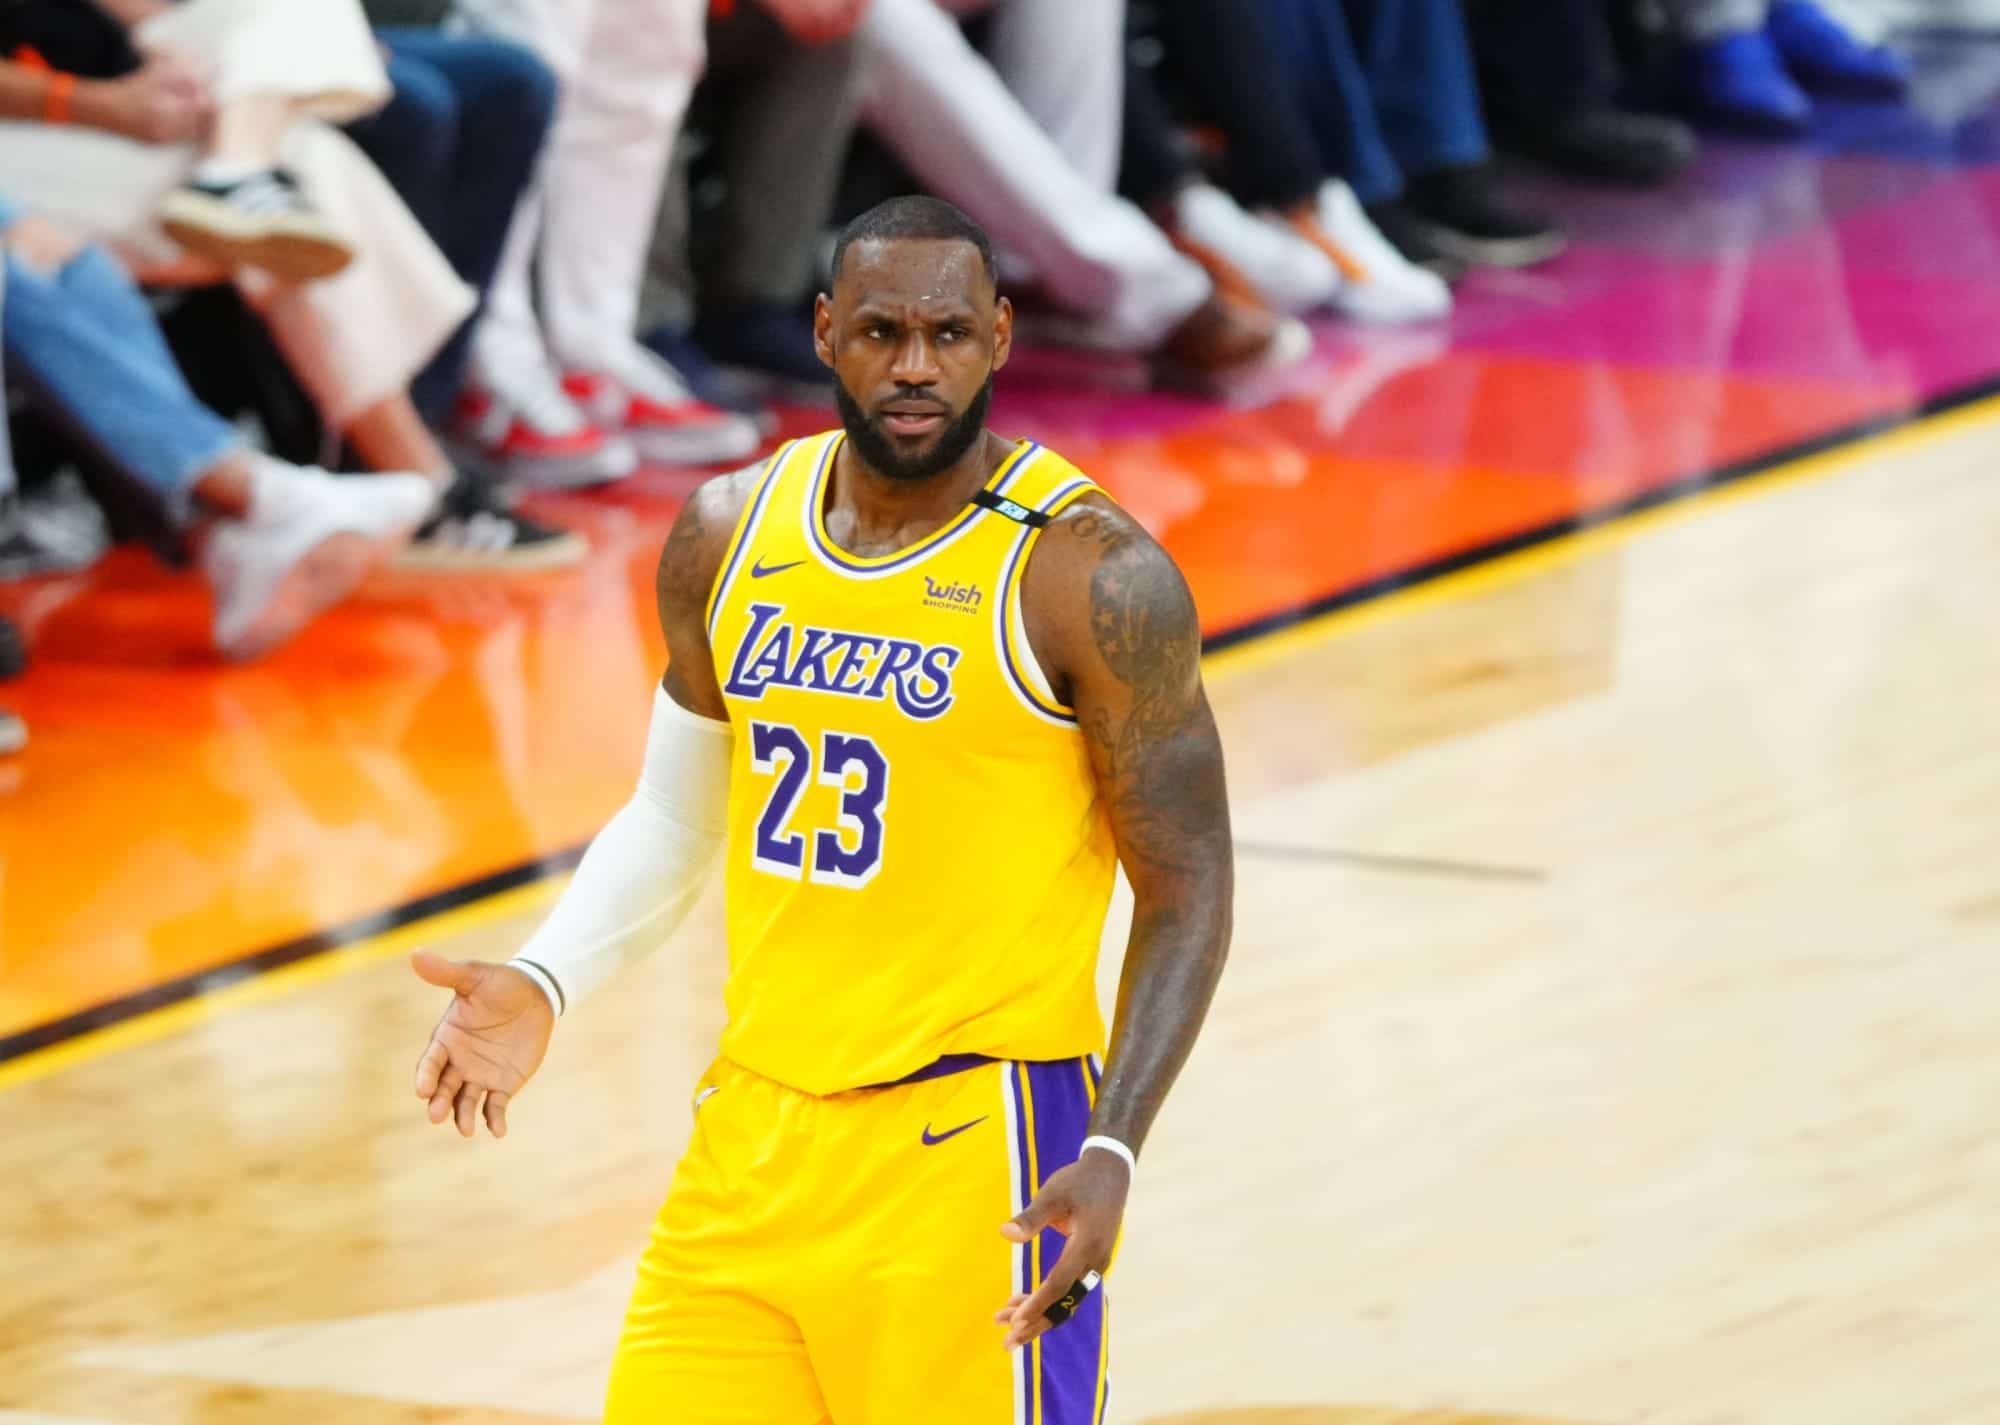 lebron-james-hints-at-pulling-out-of-the-olympics-which-is-honest-records-for-lakers.jpeg